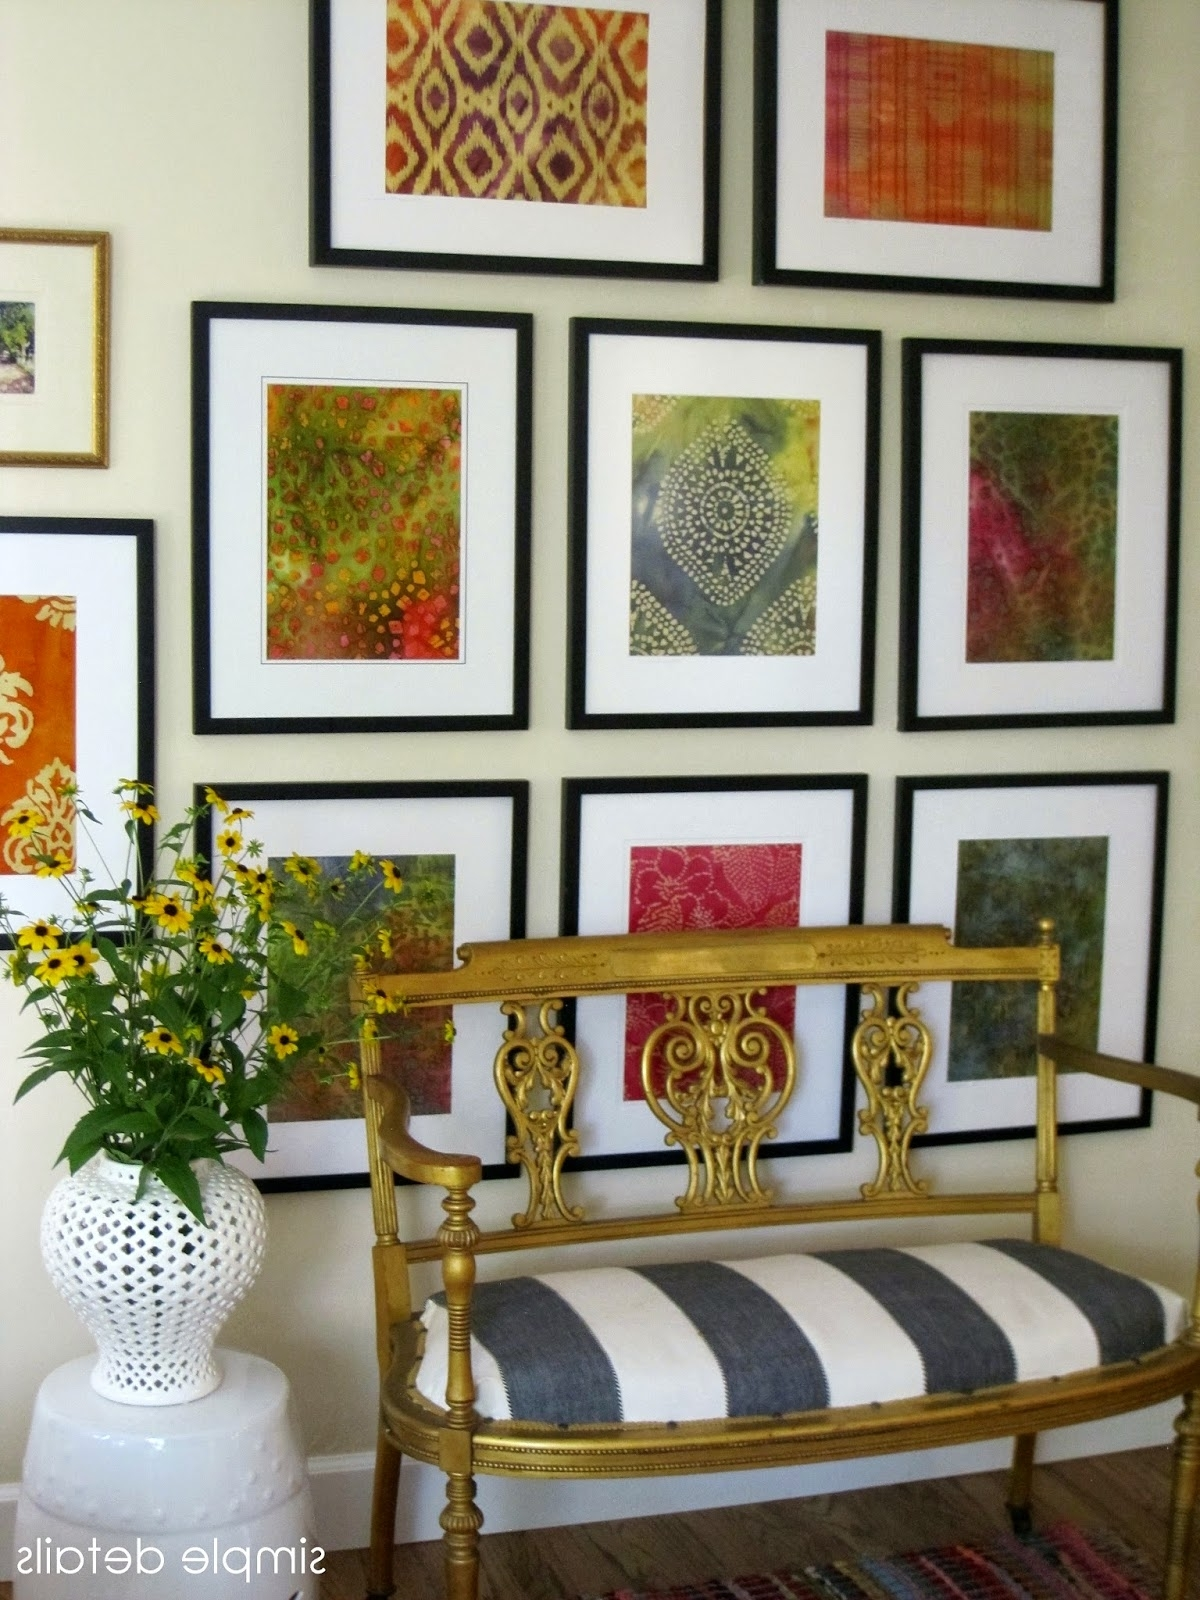 Recent African Village Life Batik Textile Art Print Cloth Fabric Wall Within Cloth Fabric Wall Art (Gallery 15 of 15)